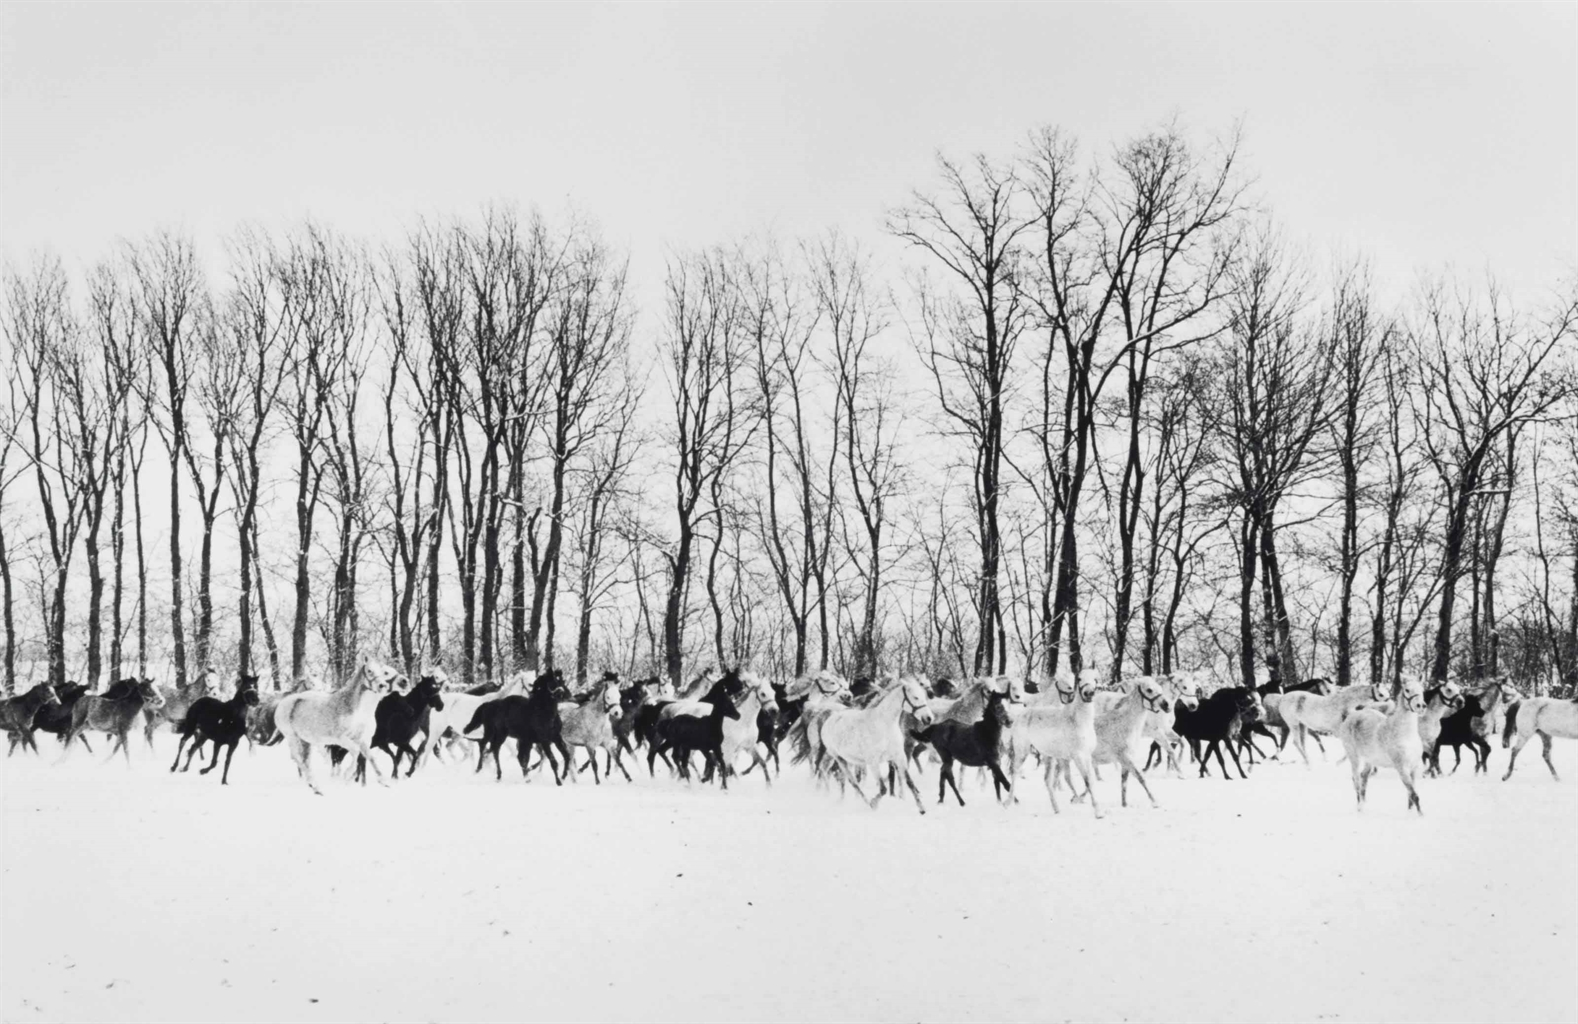 Henri Cartier-Bresson-Stud Farm To The South Of Budapest, Hungary-1964